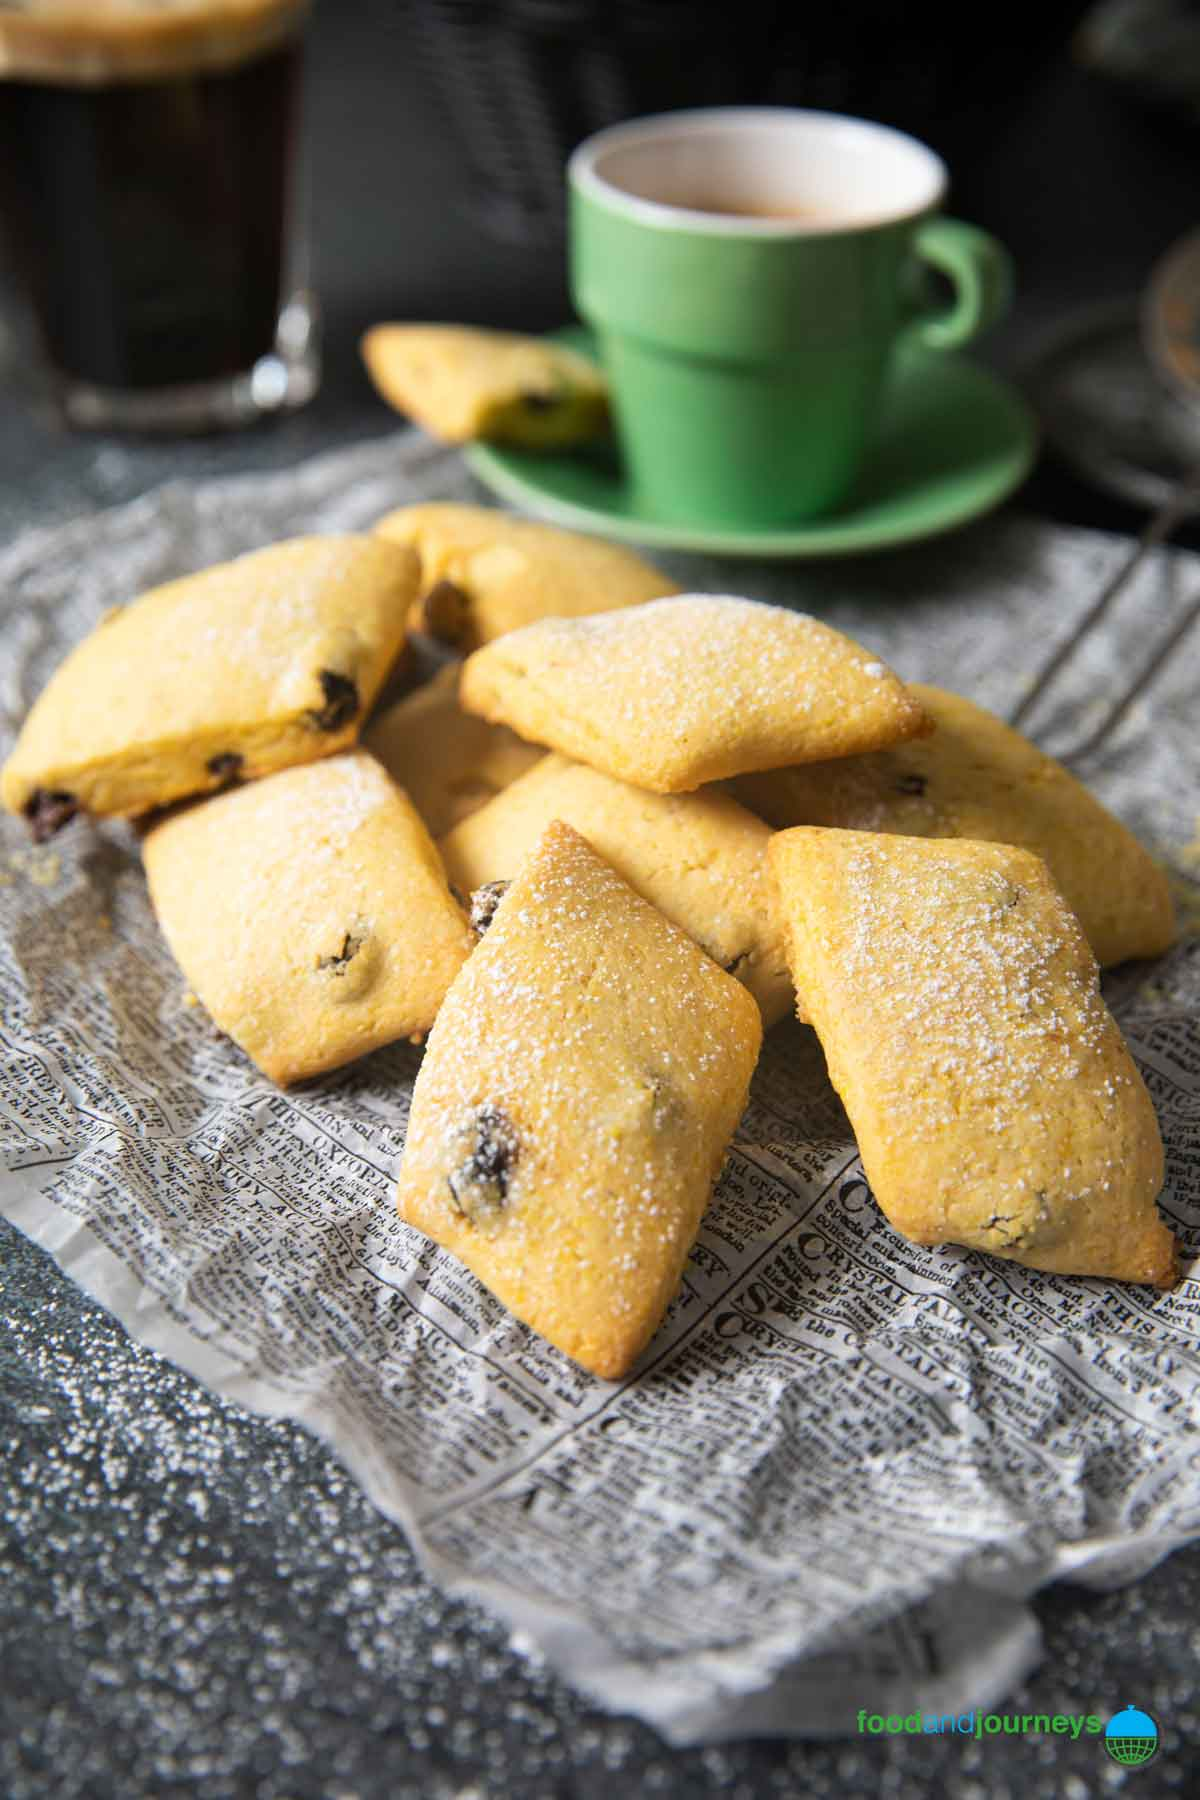 A stack of cornmeal cookies from Veneto, dusted with powdered sugar and served with an espresso.